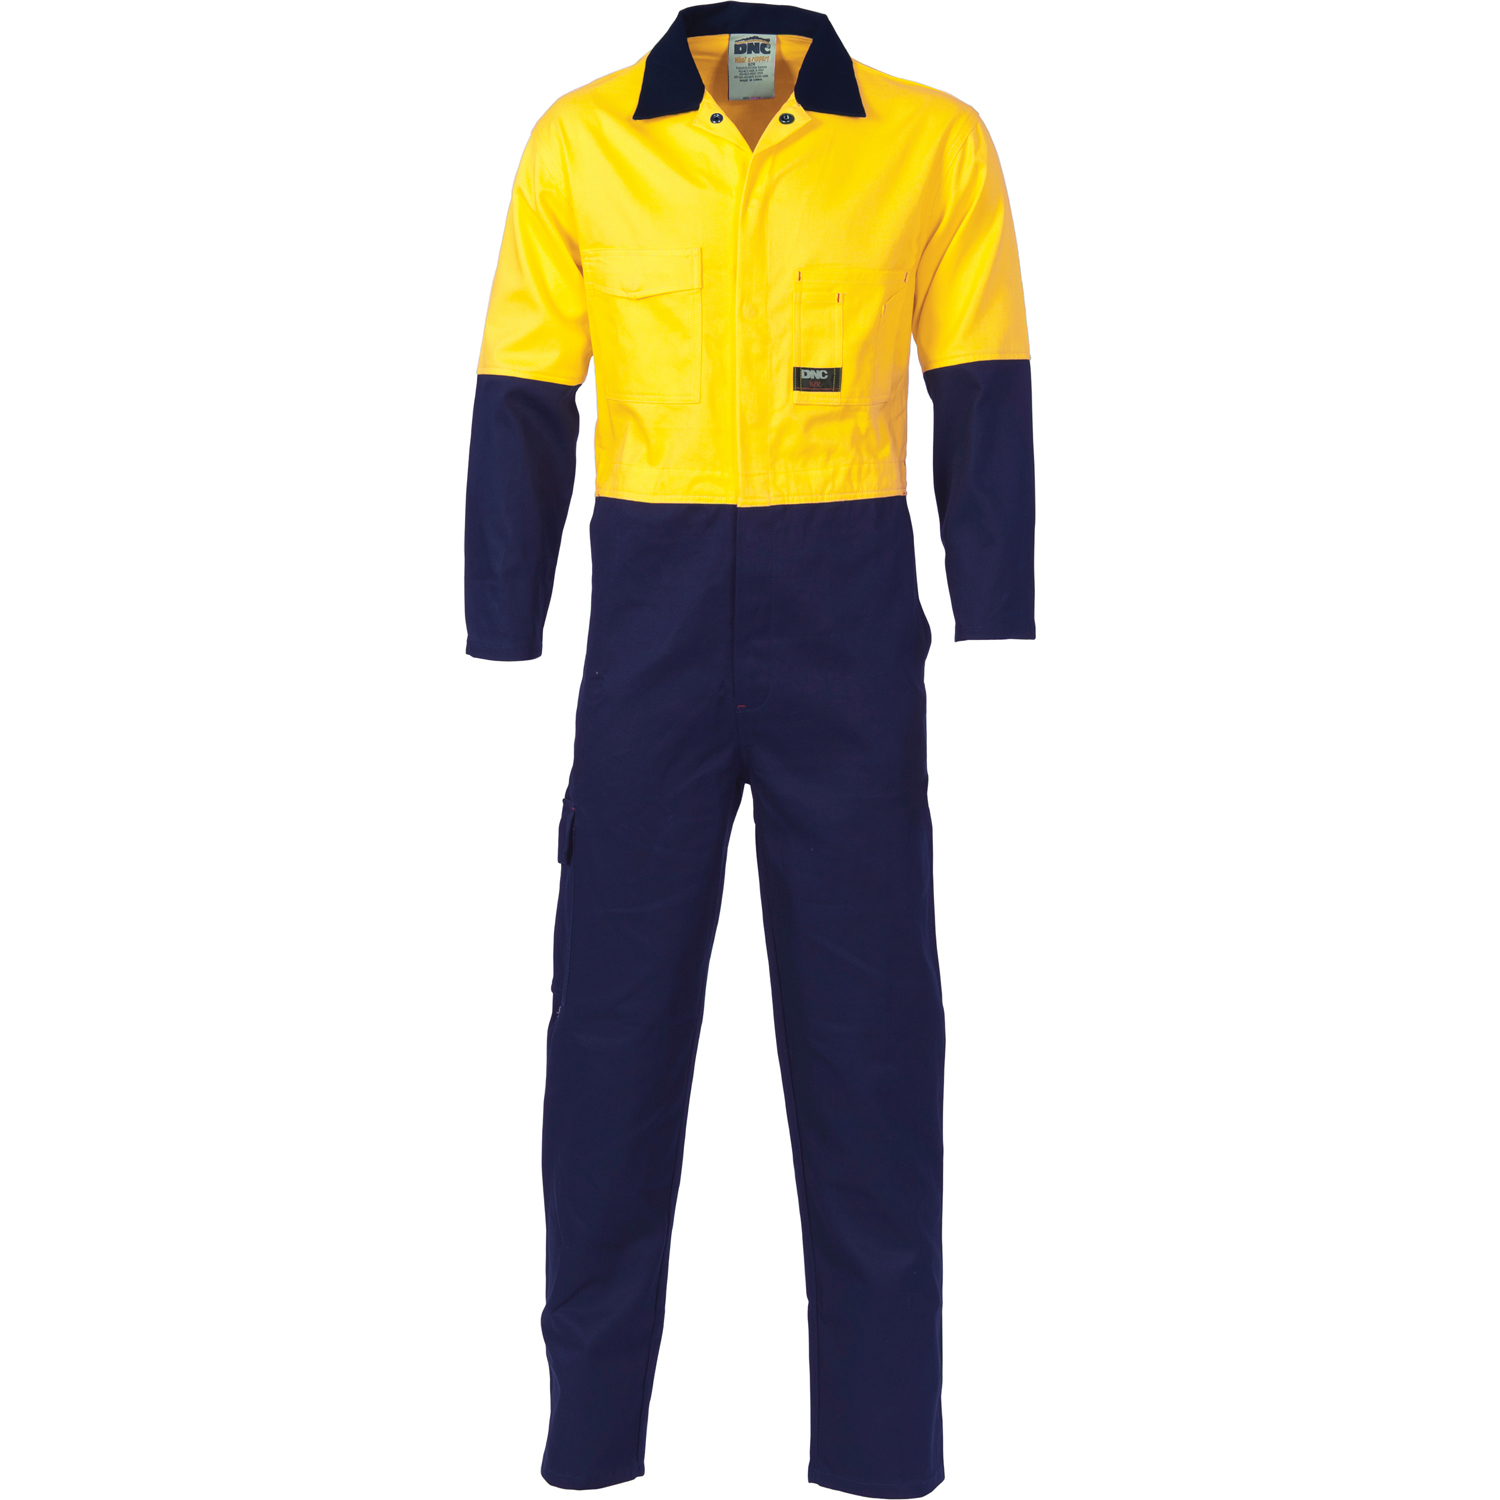 DNC 3852-190gsm HiVis Cool-Breeze Two Tone Light Weight Cotton C